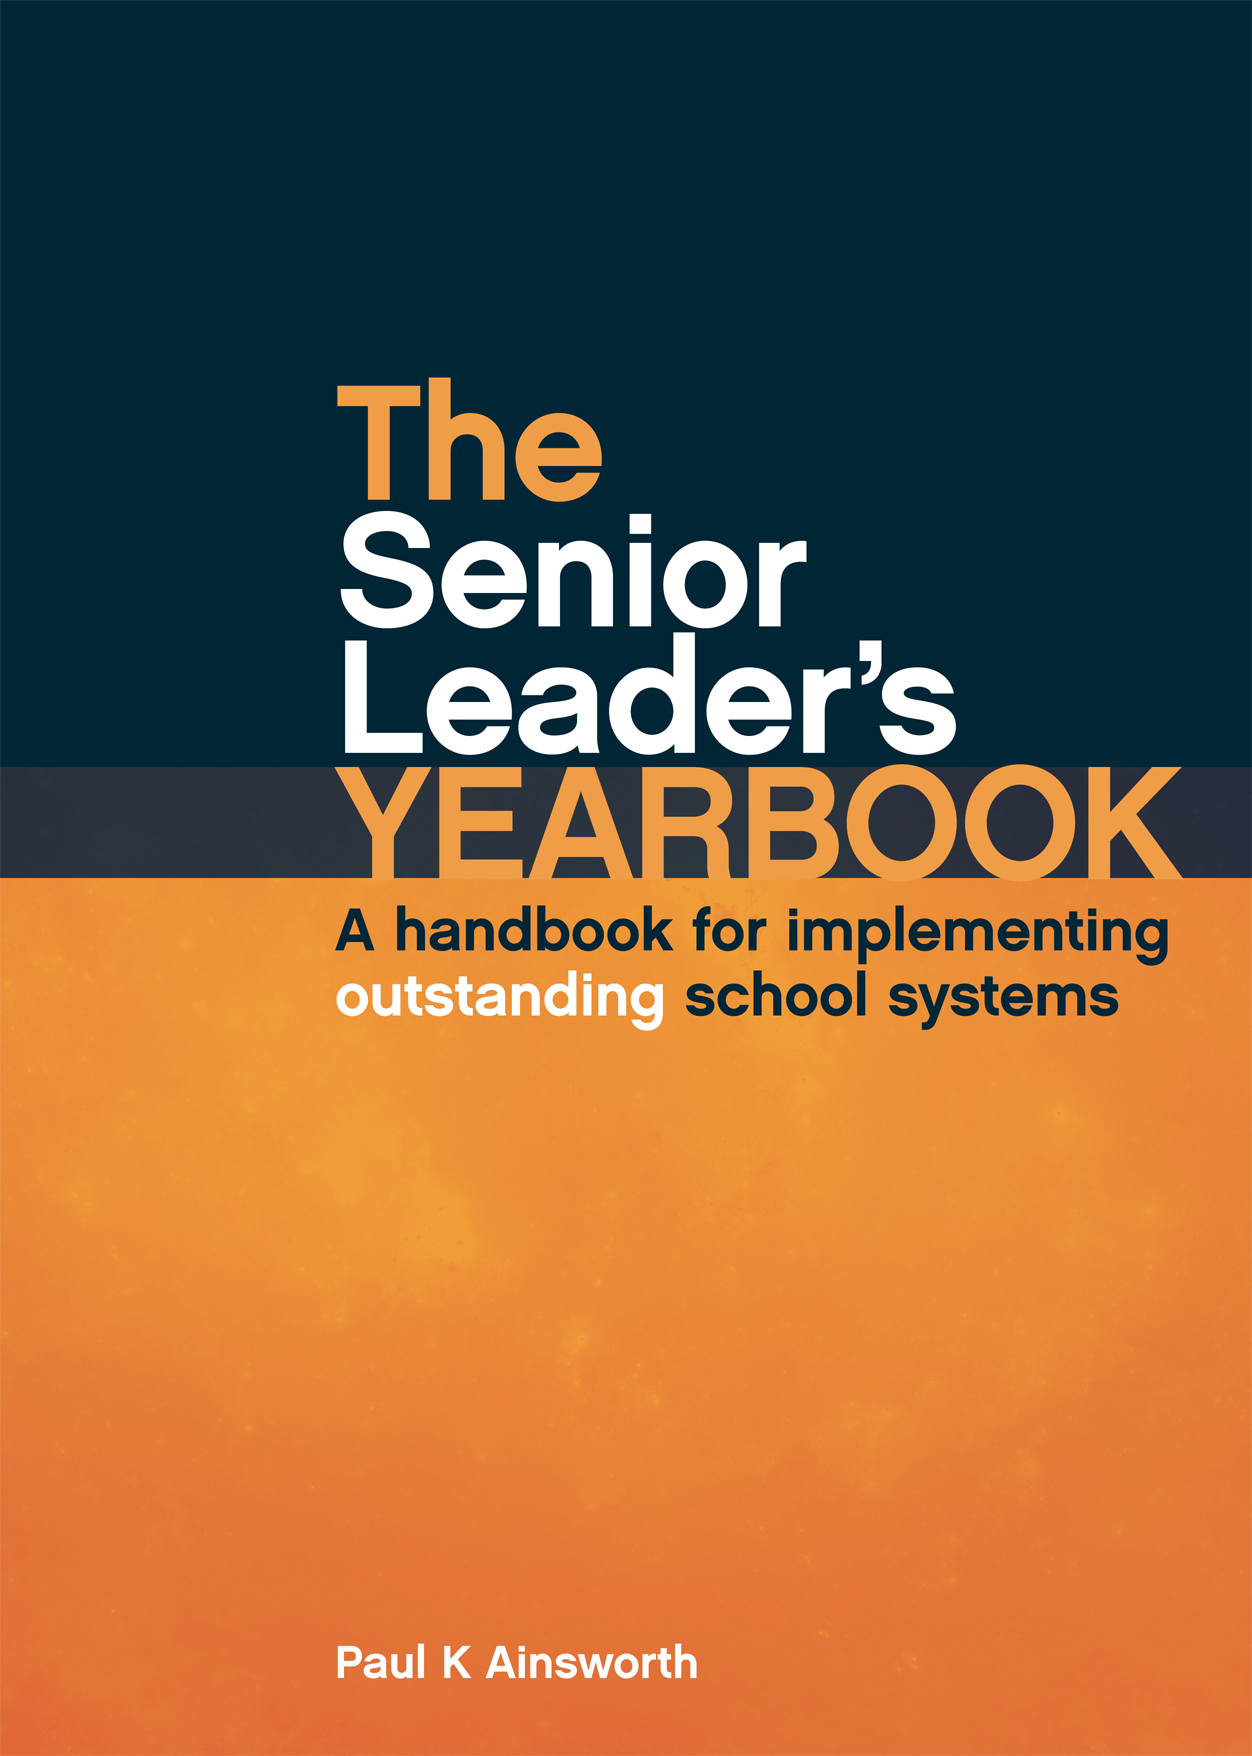 The Senior Leader's Yearbook